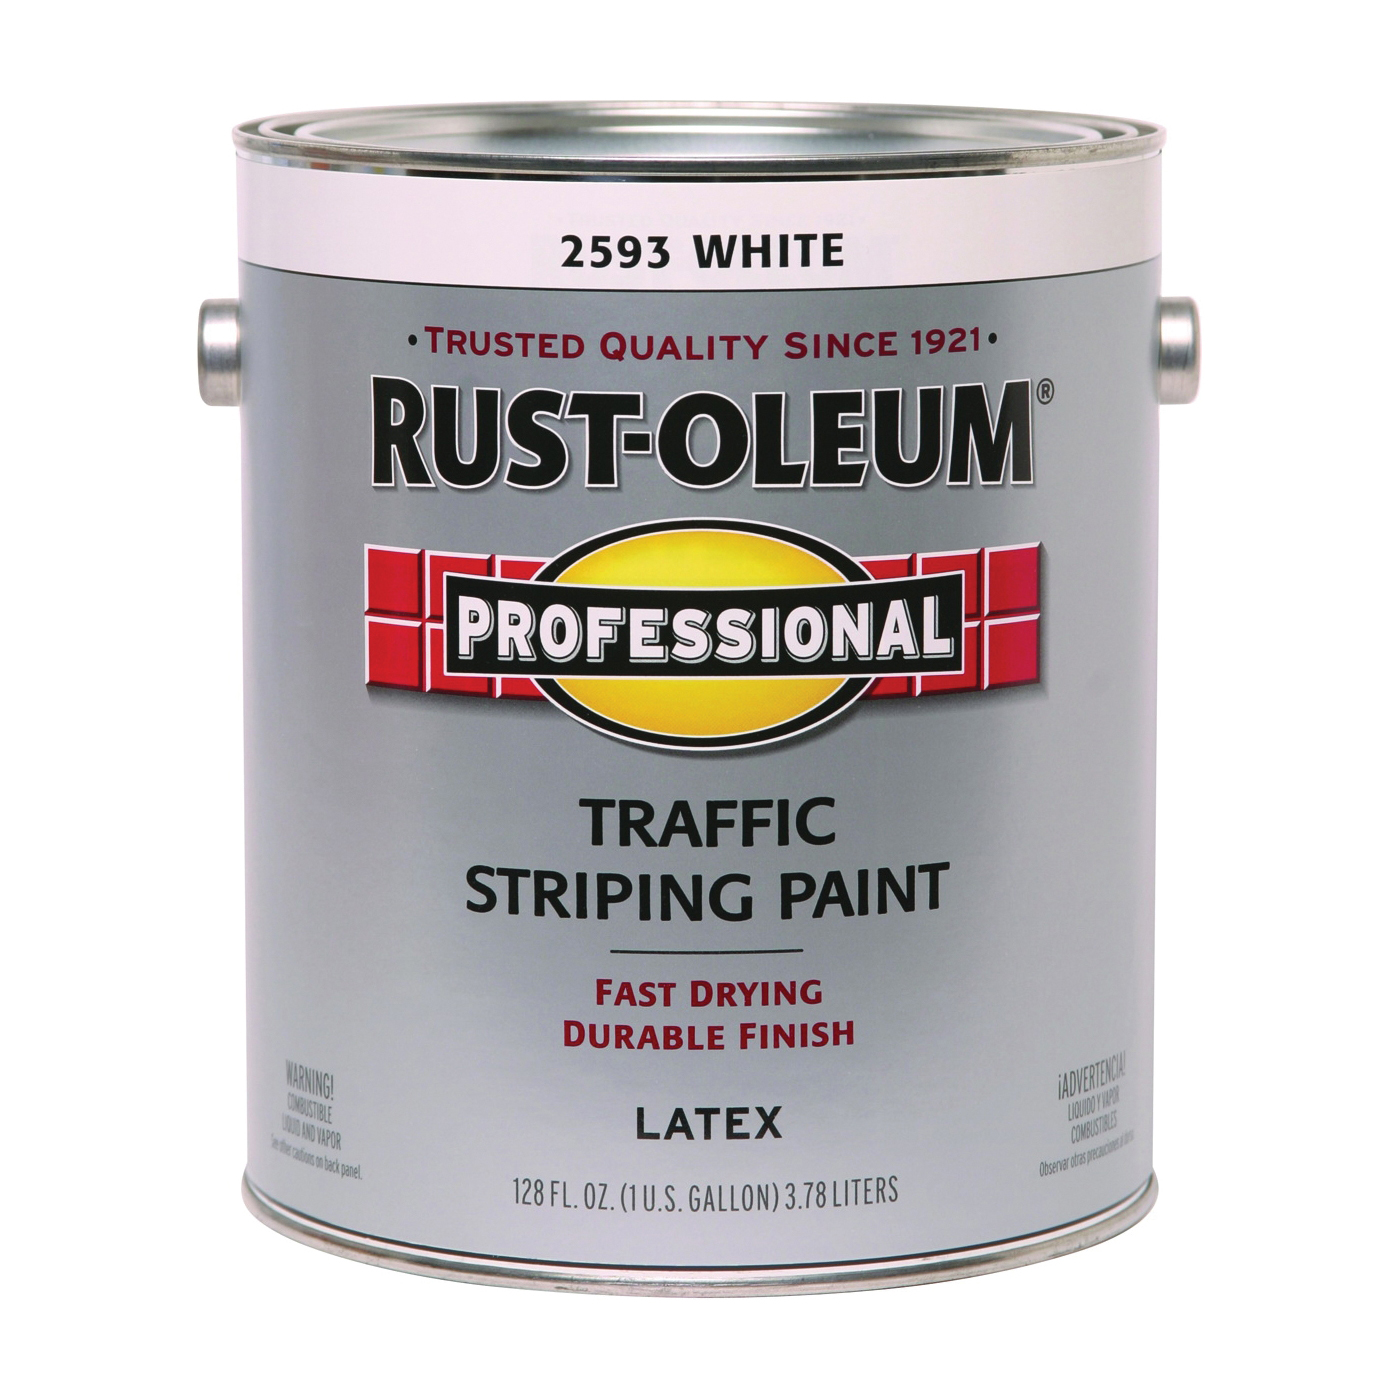 Picture of RUST-OLEUM PROFESSIONAL 2593402 Traffic Striping Paint, Flat, Traffic White, 1 gal, Pail